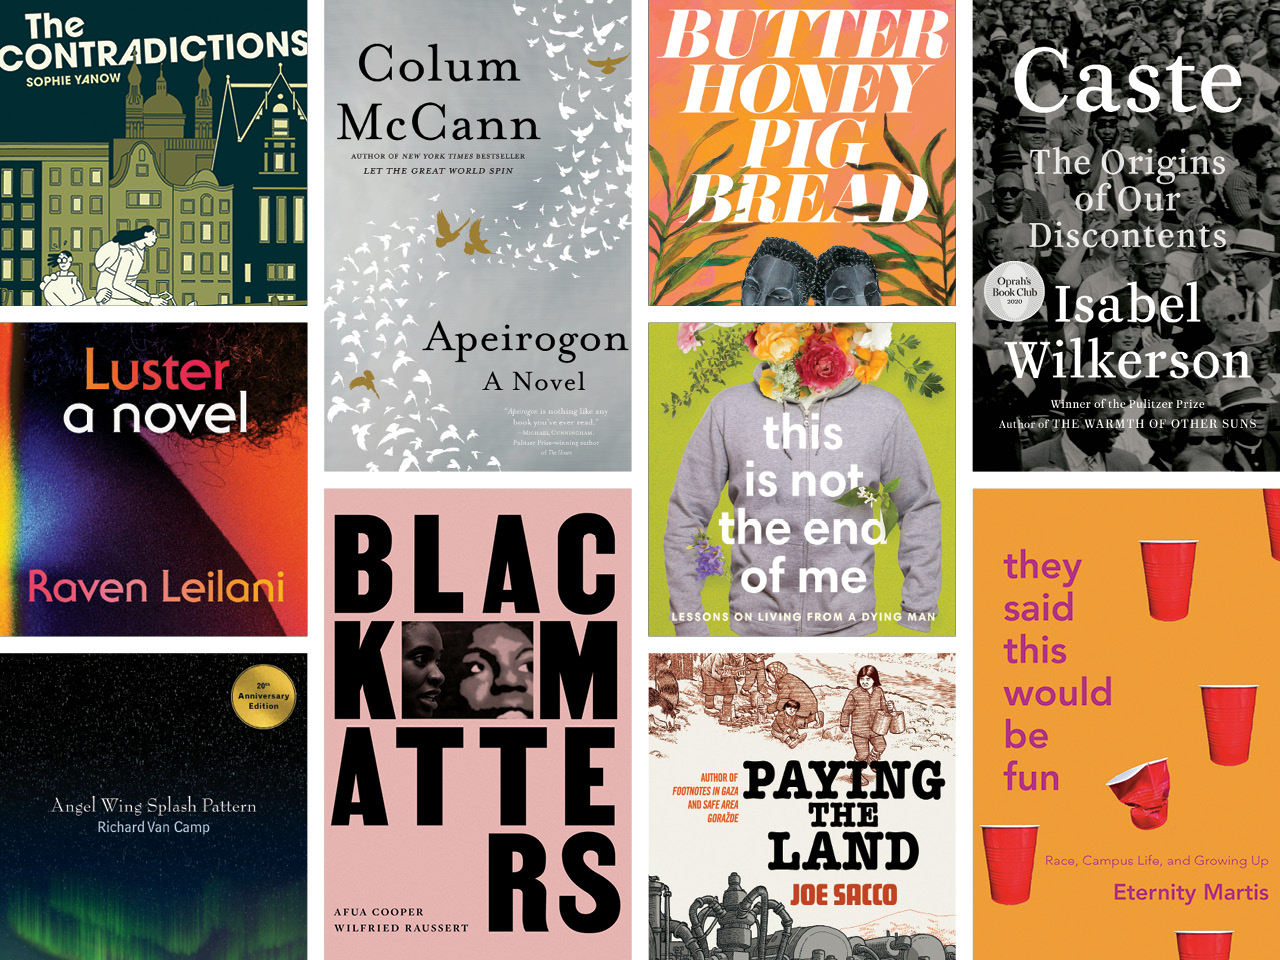 A collage of images of the covers of the books mentioned.